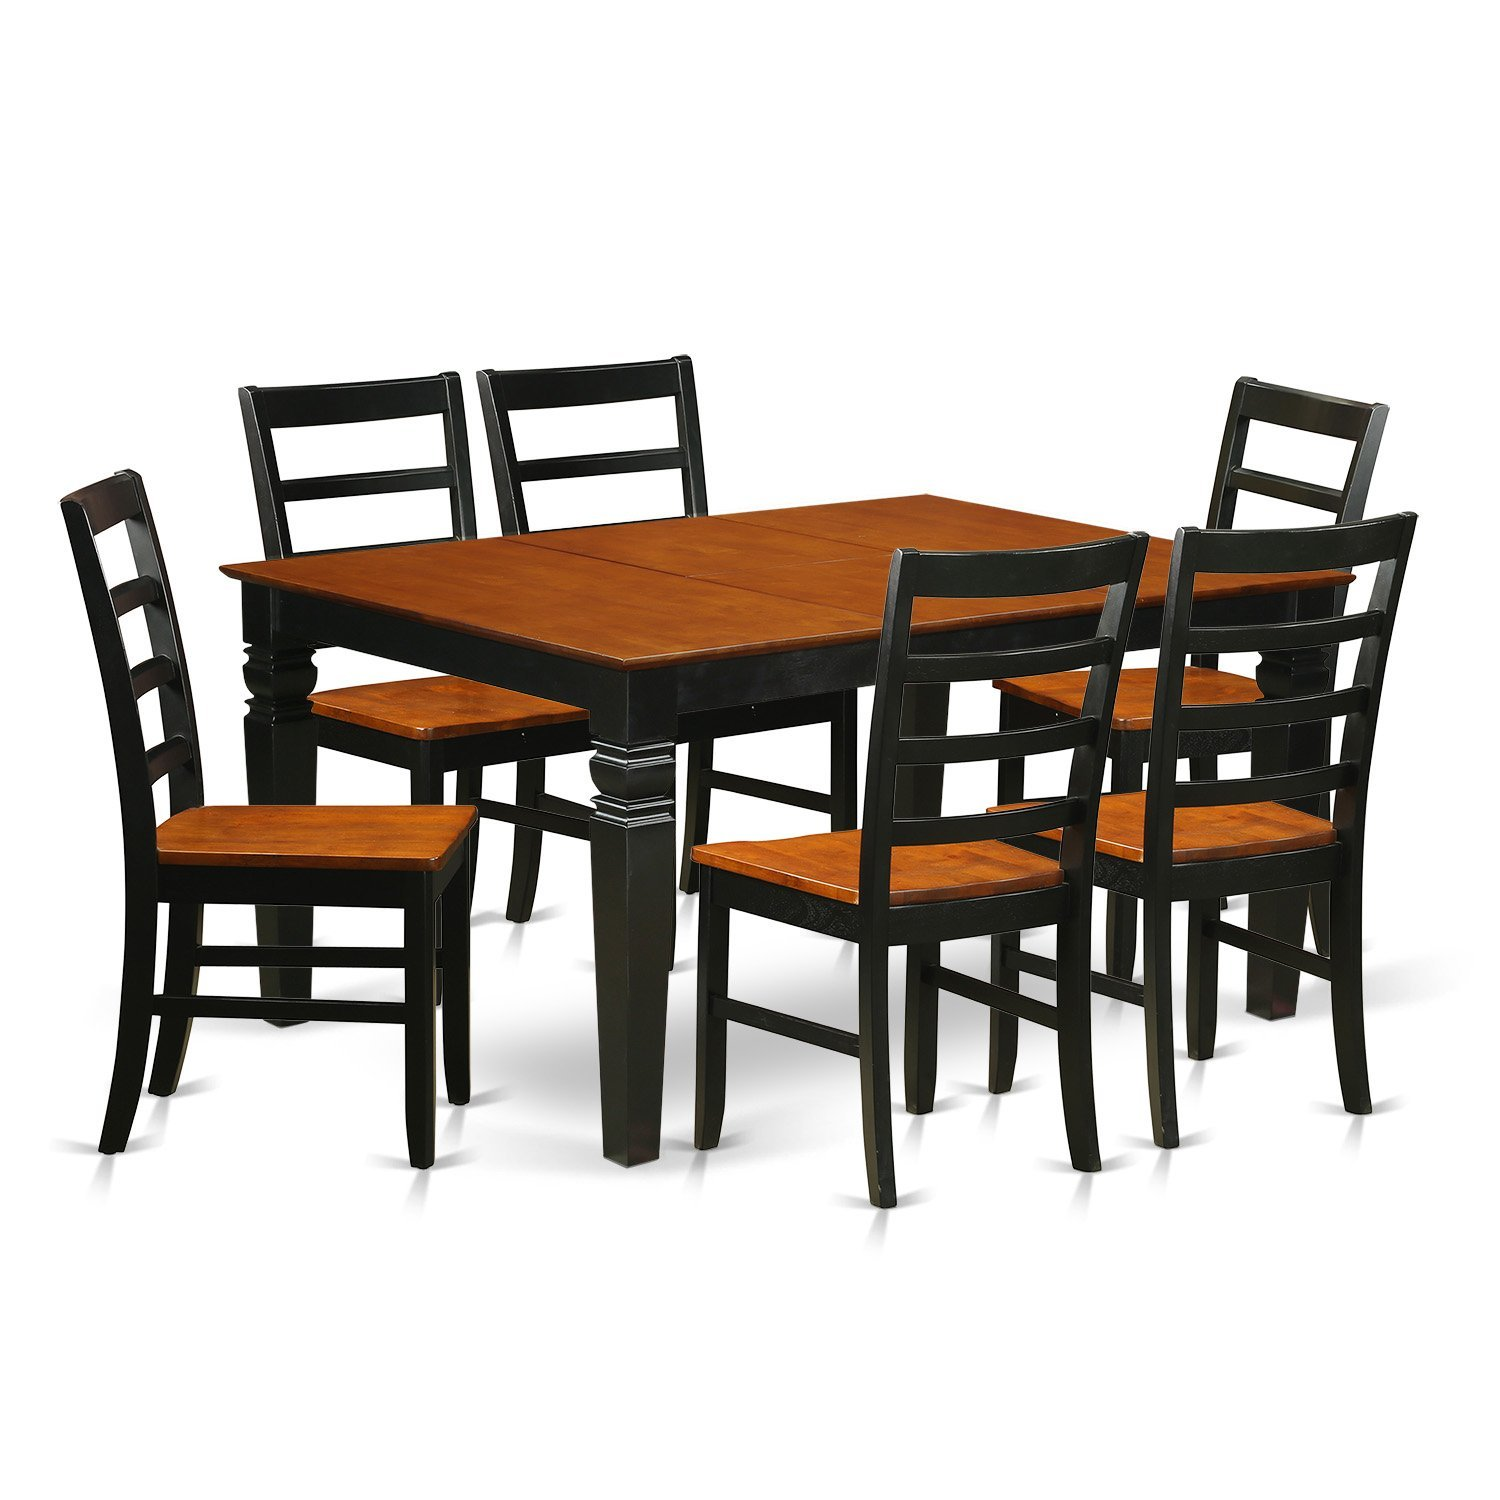 East West Furniture Weston WEPF7-BCH-W 7 Pc Kitchen Set Table and 6 Wood Dining Chairs, Black